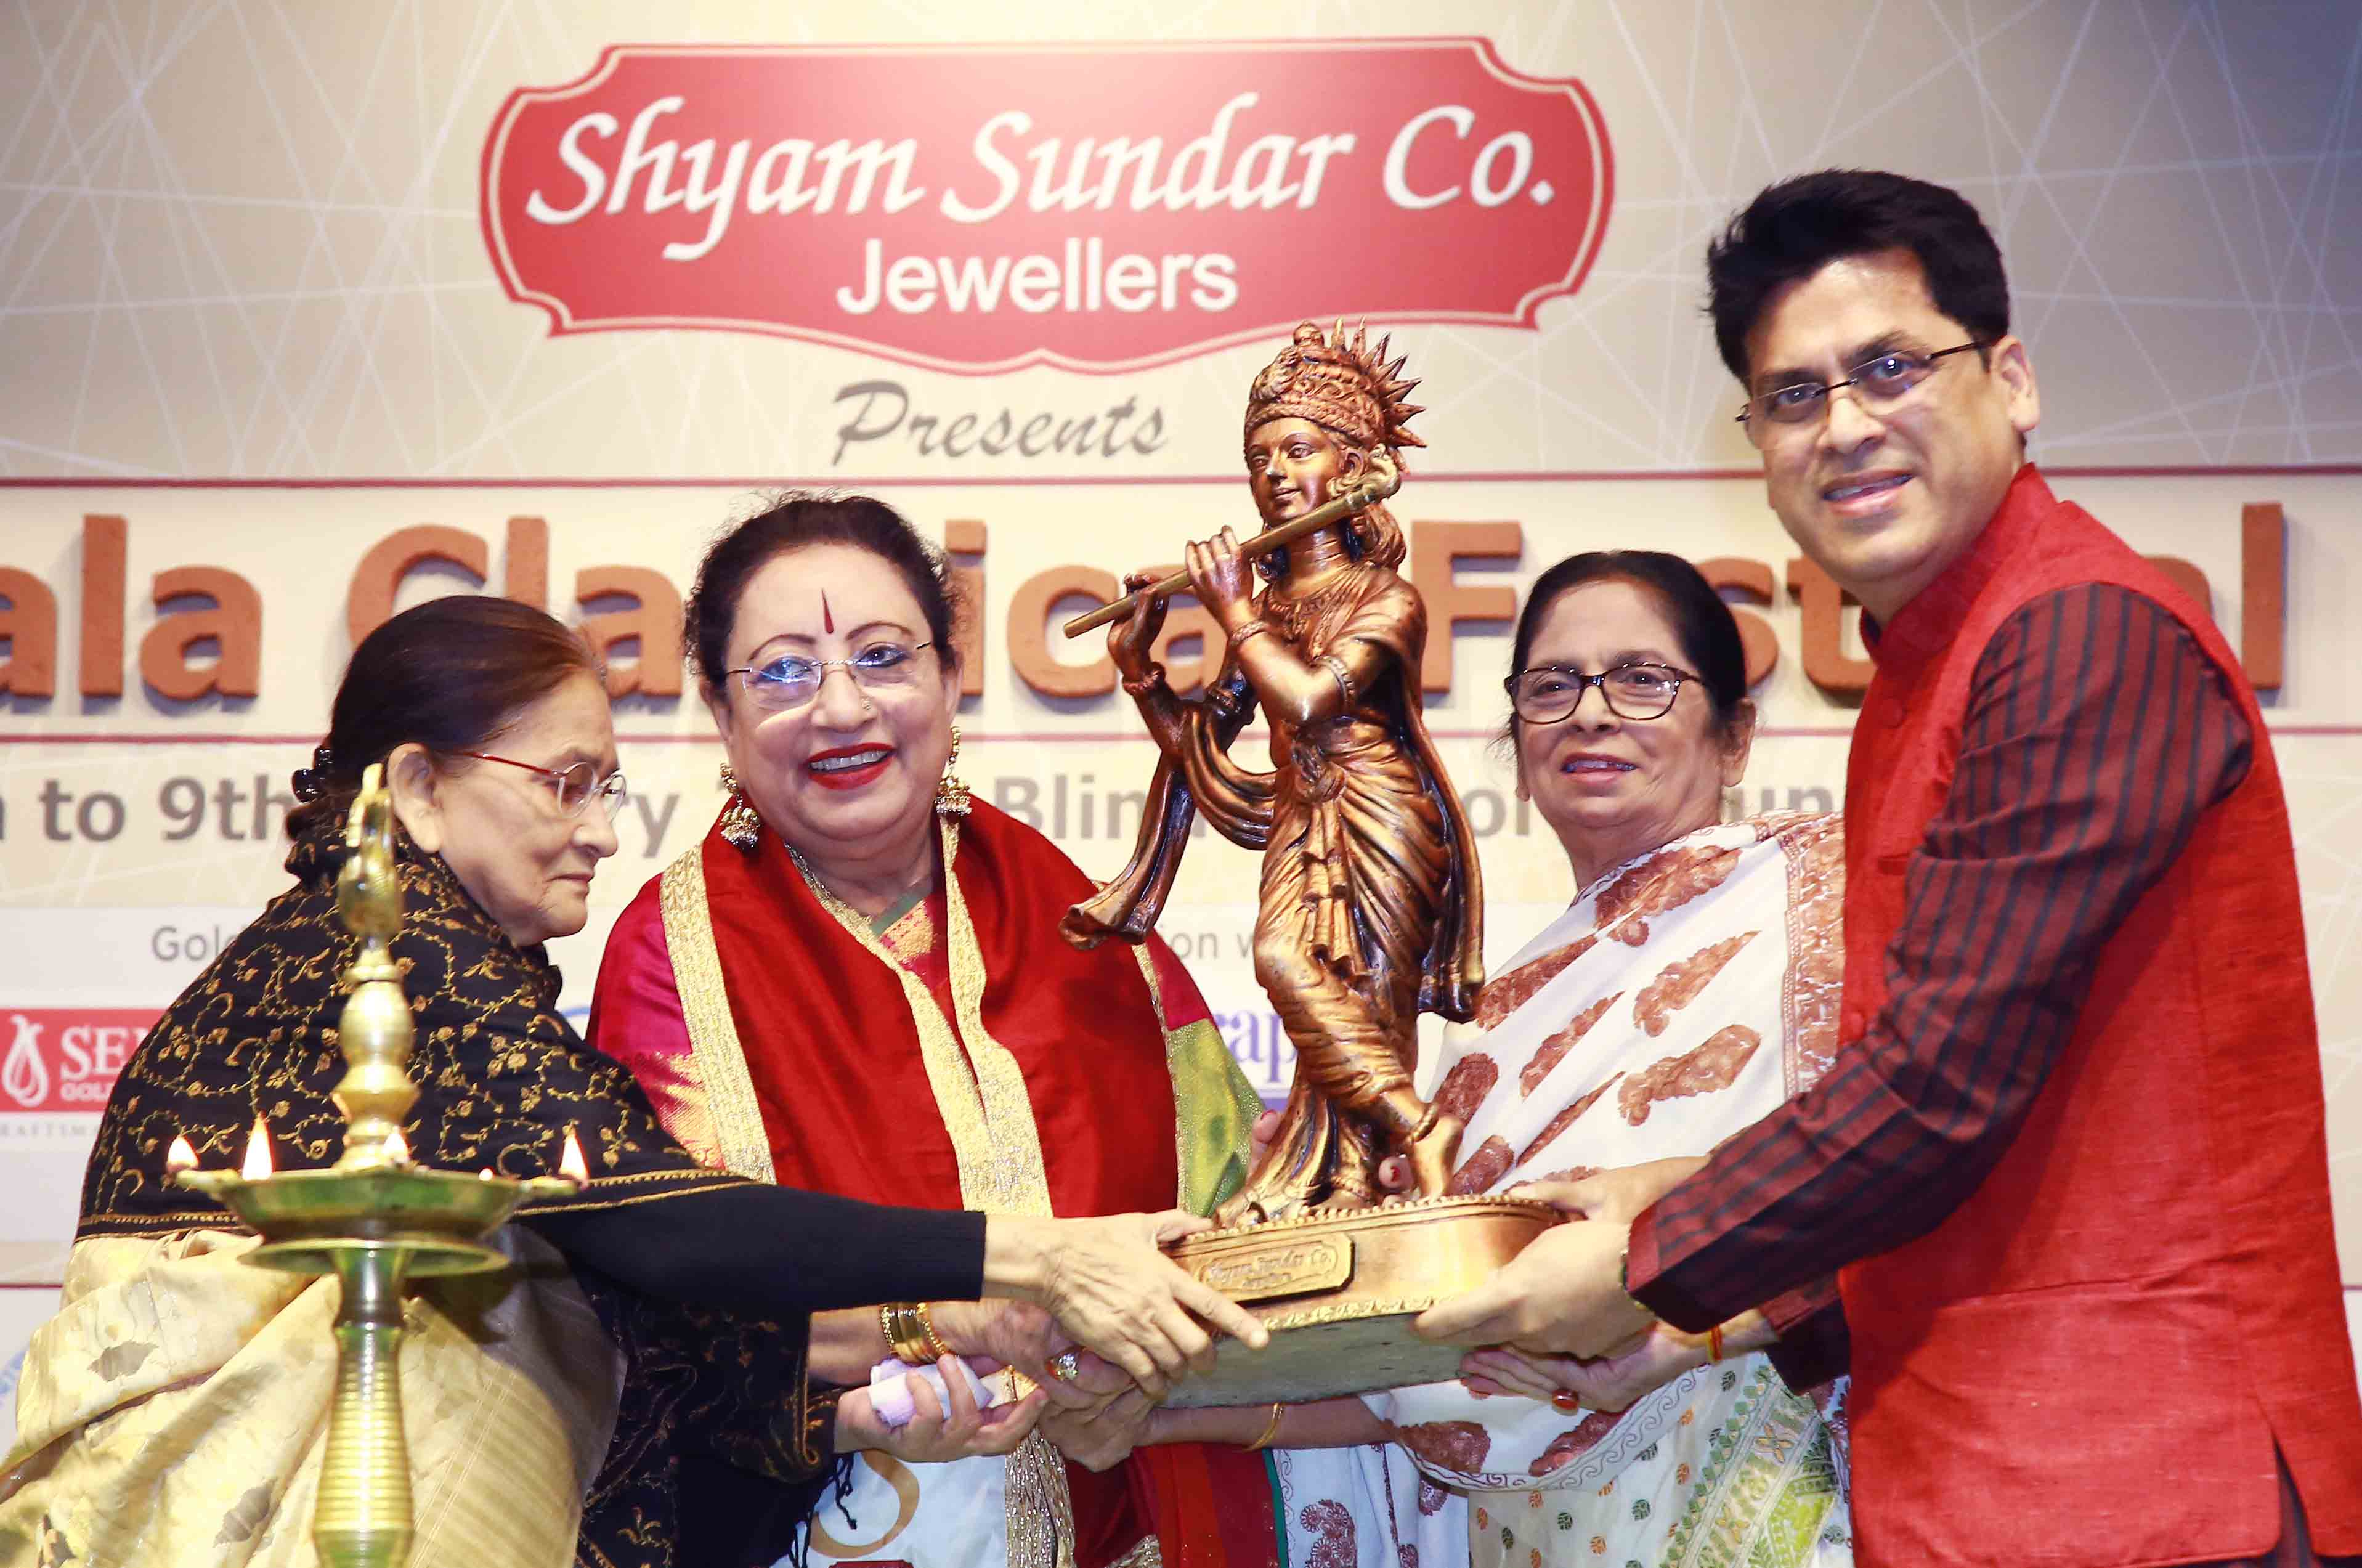 Shyam Sundar Co. Sarvottam Samman to the Classical Vocalist Par Excellence Begum Parveen Sultana